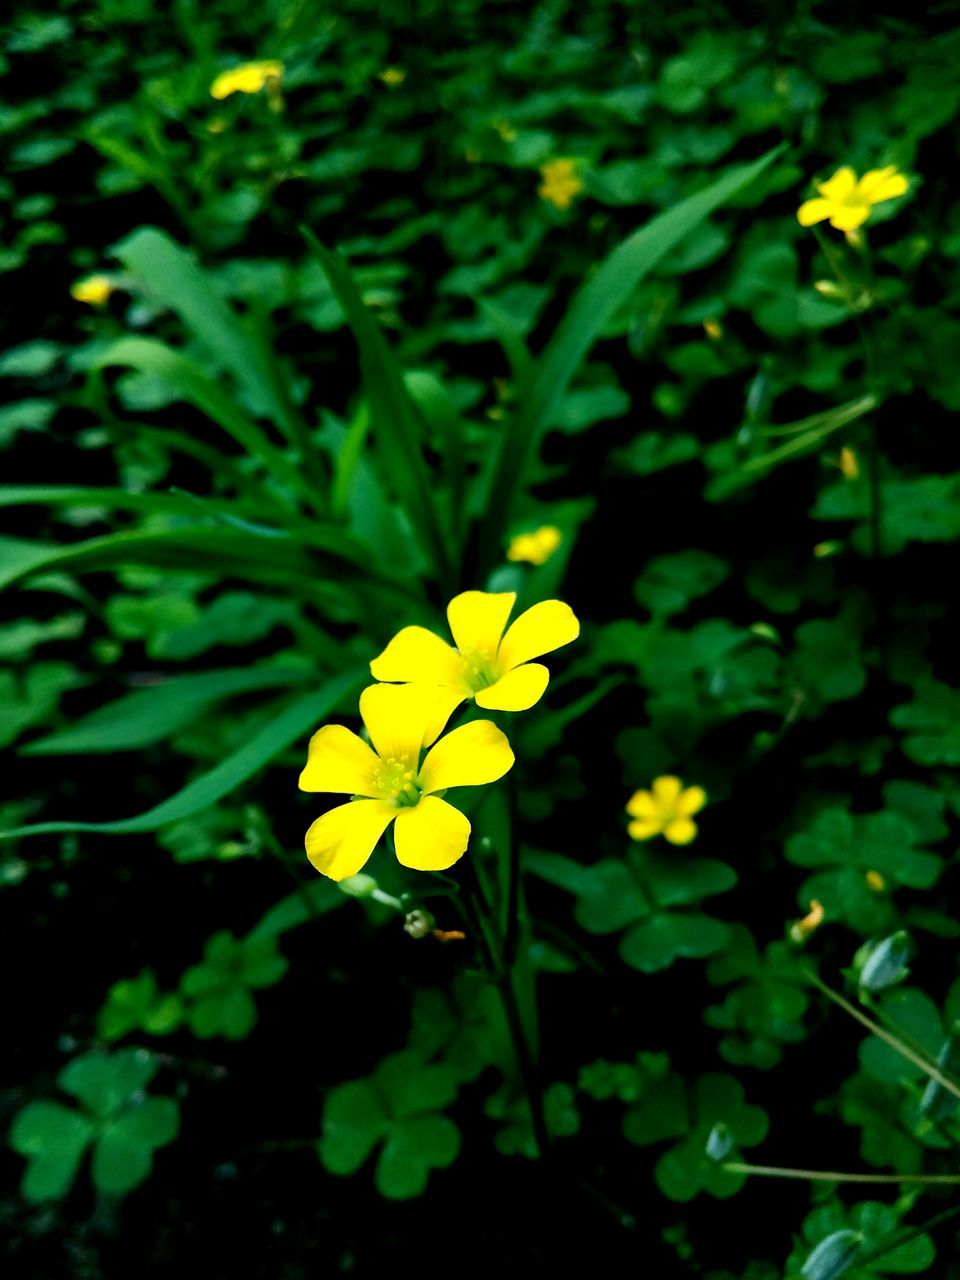 flower, yellow, growth, fragility, petal, nature, beauty in nature, freshness, green color, flower head, plant, blooming, no people, outdoors, day, close-up